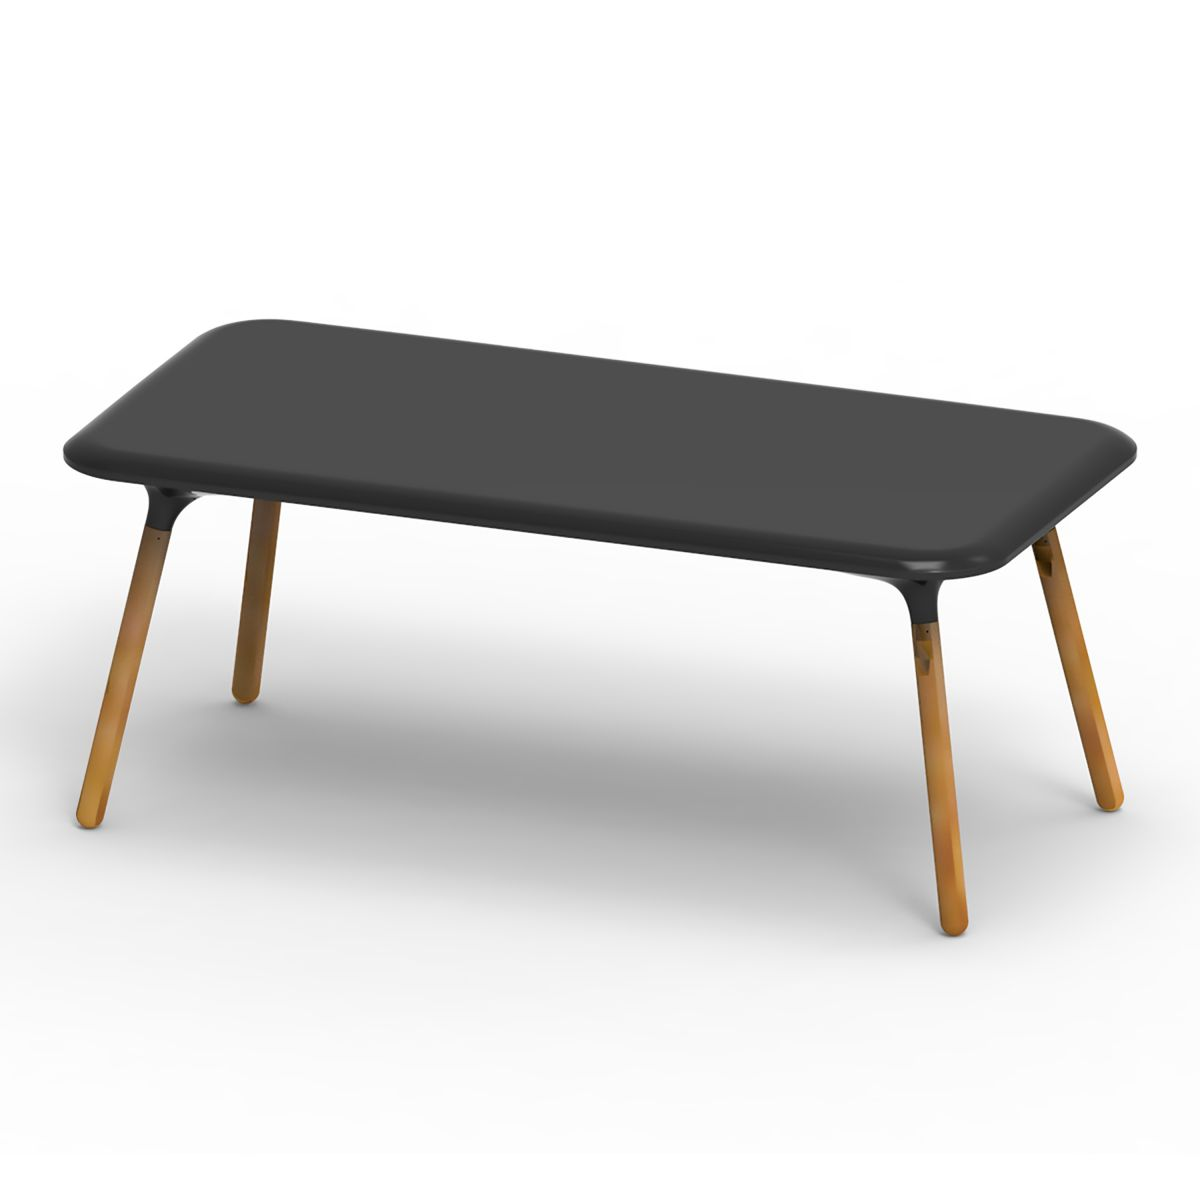 Table de repas sloo vondom zendart design - Table de jardin design ...